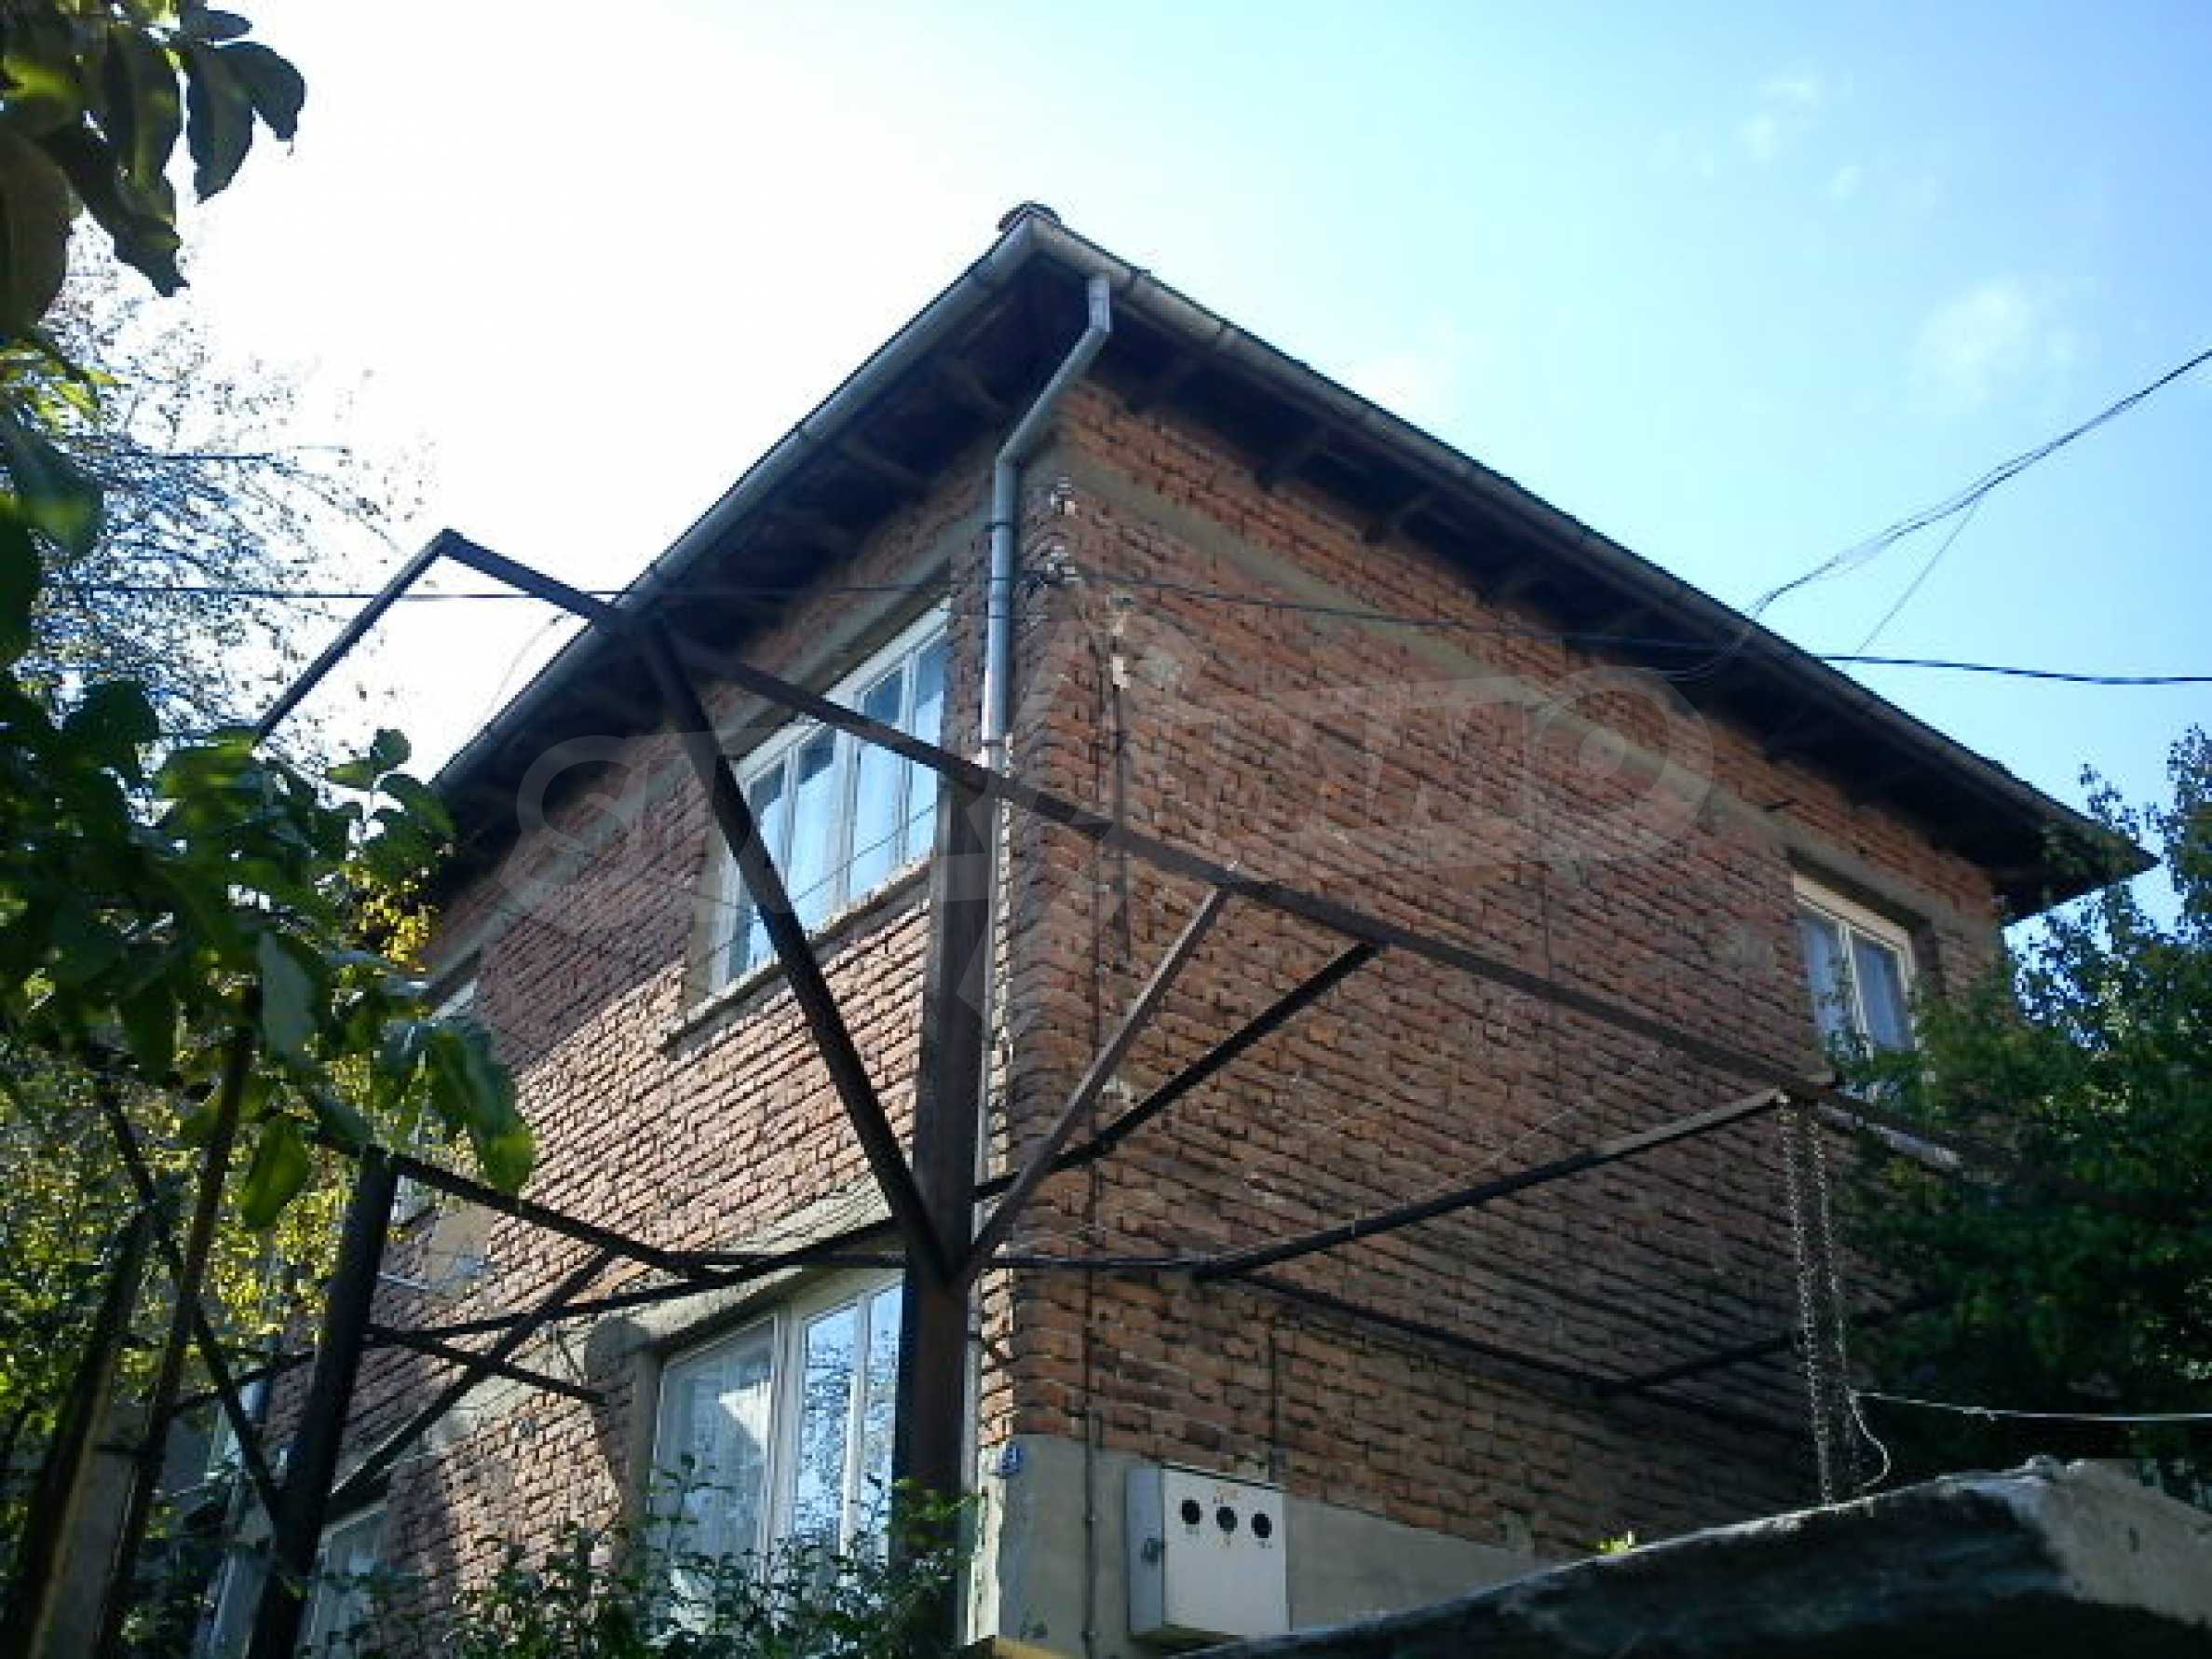 Second floor of a house located in Veliko Tarnovo